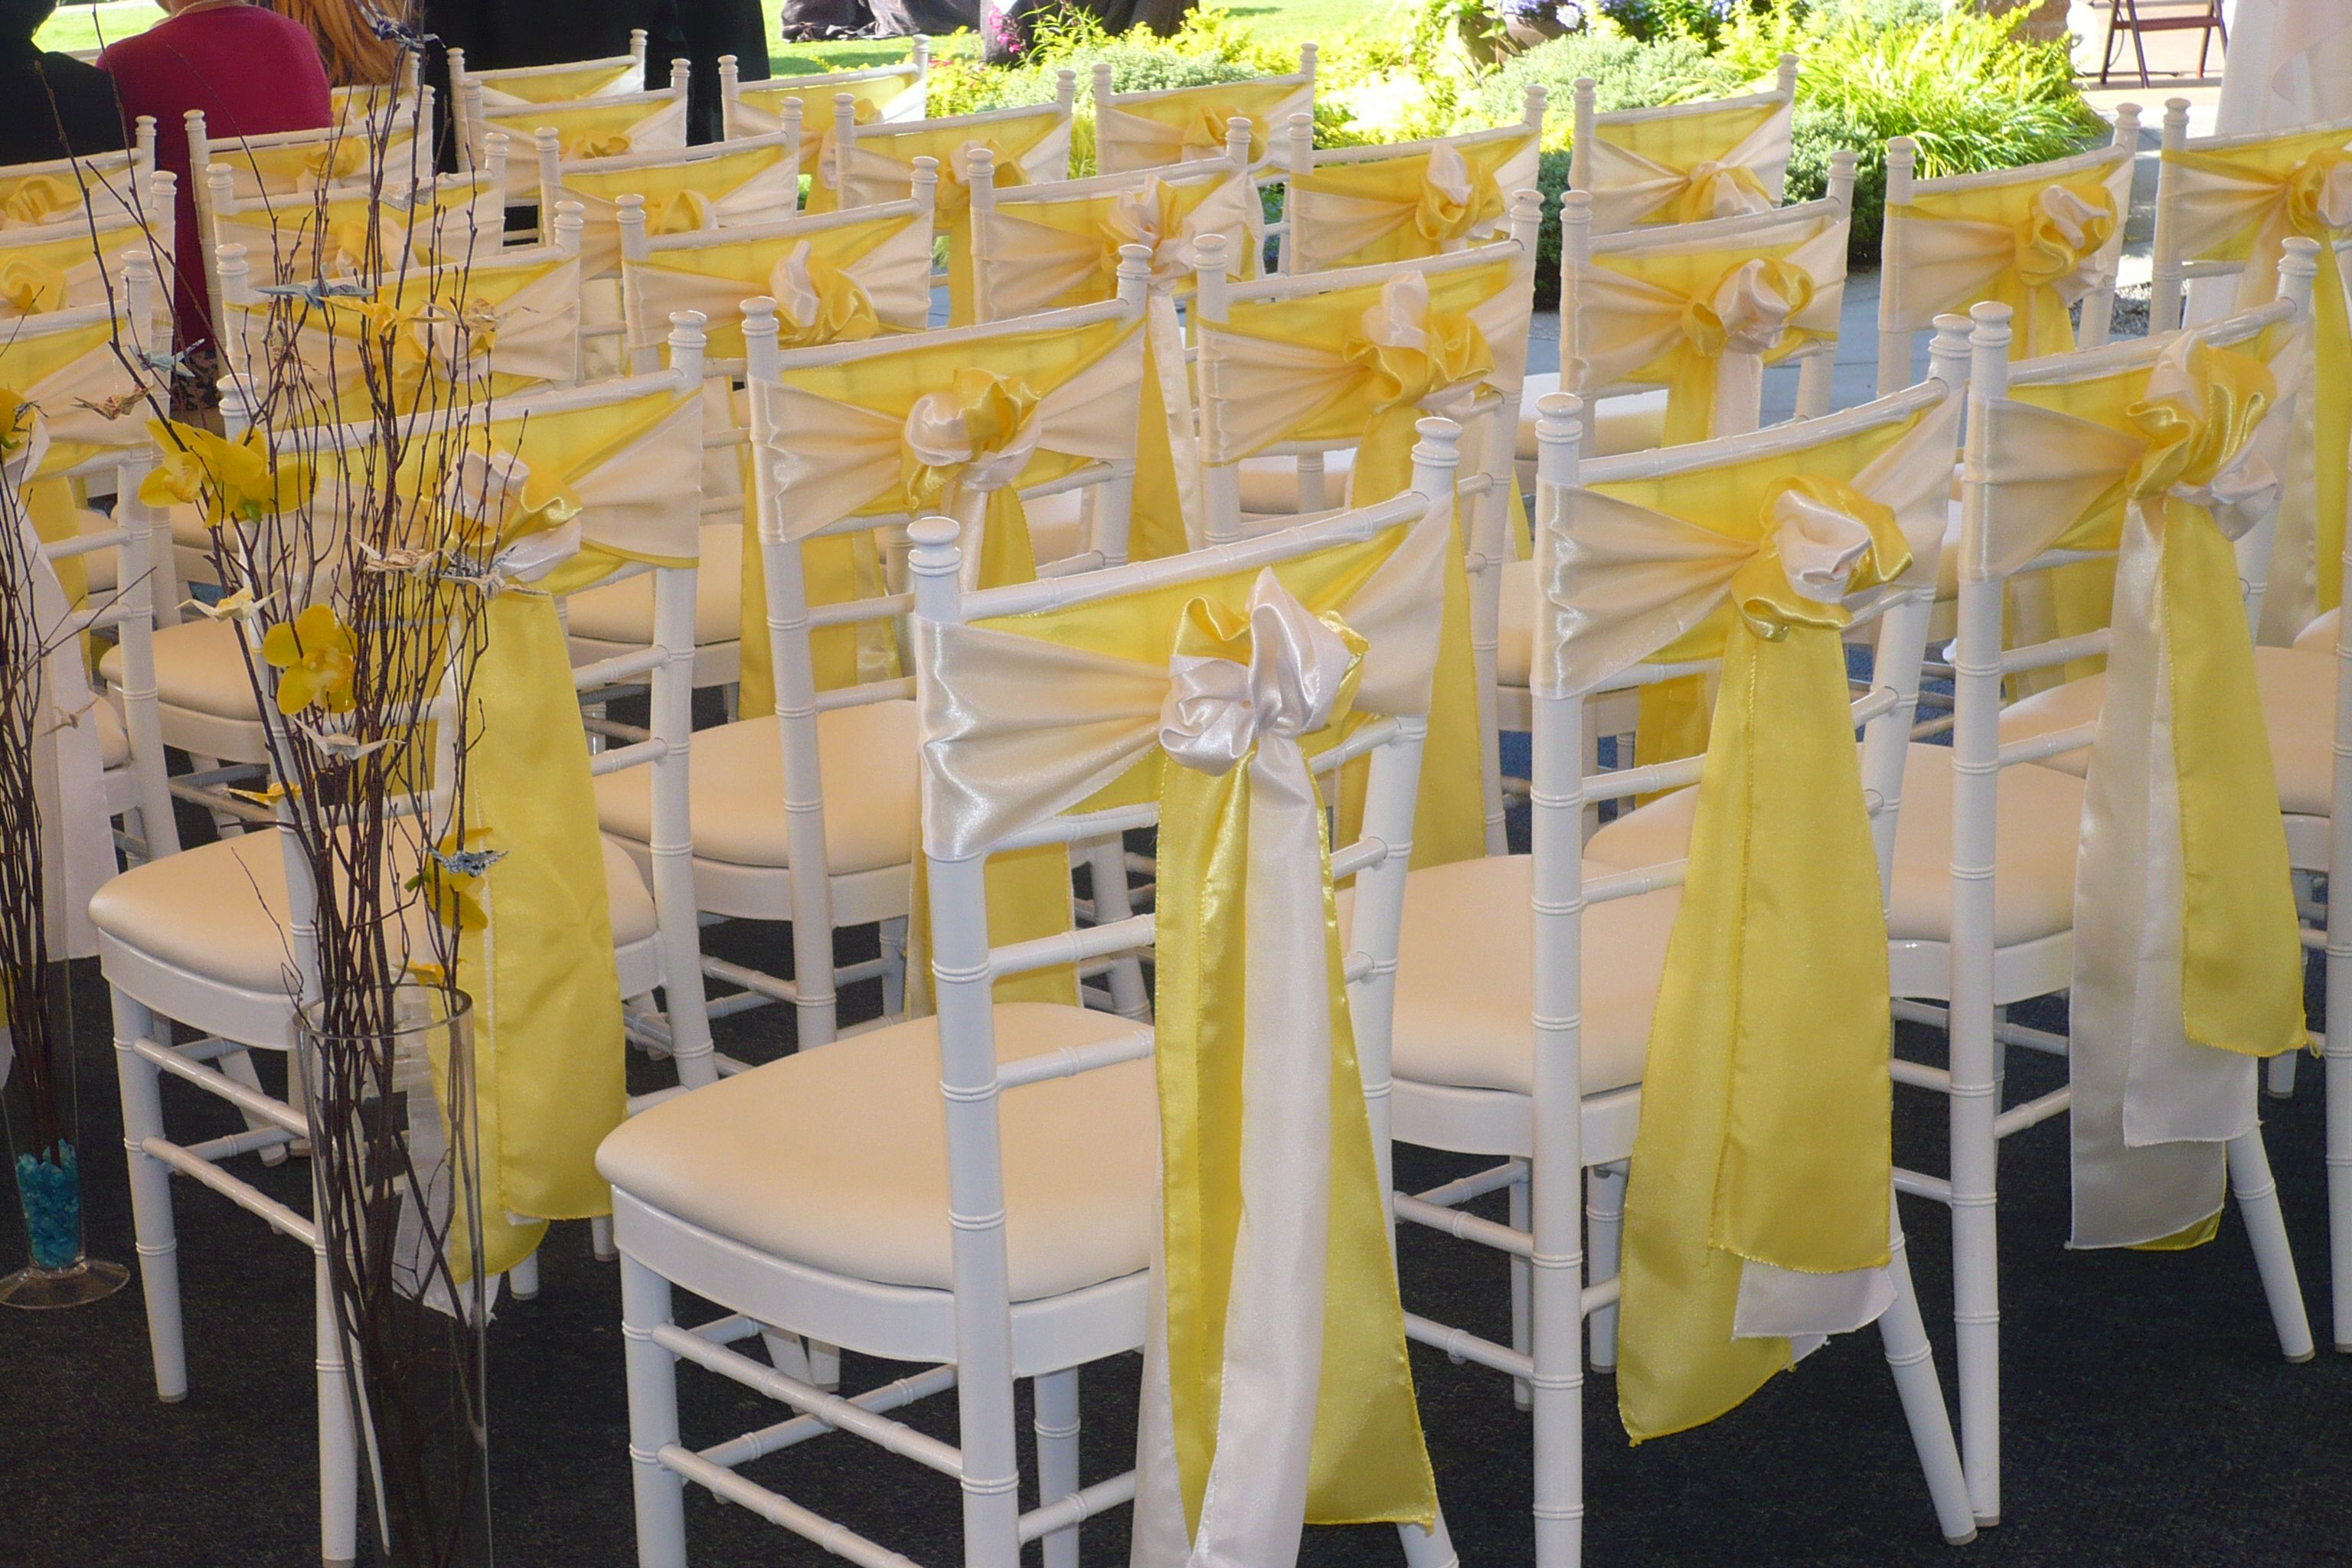 Platinum Designs Inc Chair Covers Specialty Linens Rentals Yellow Wedding Decorations Wedding Linen Rental Wedding Linens